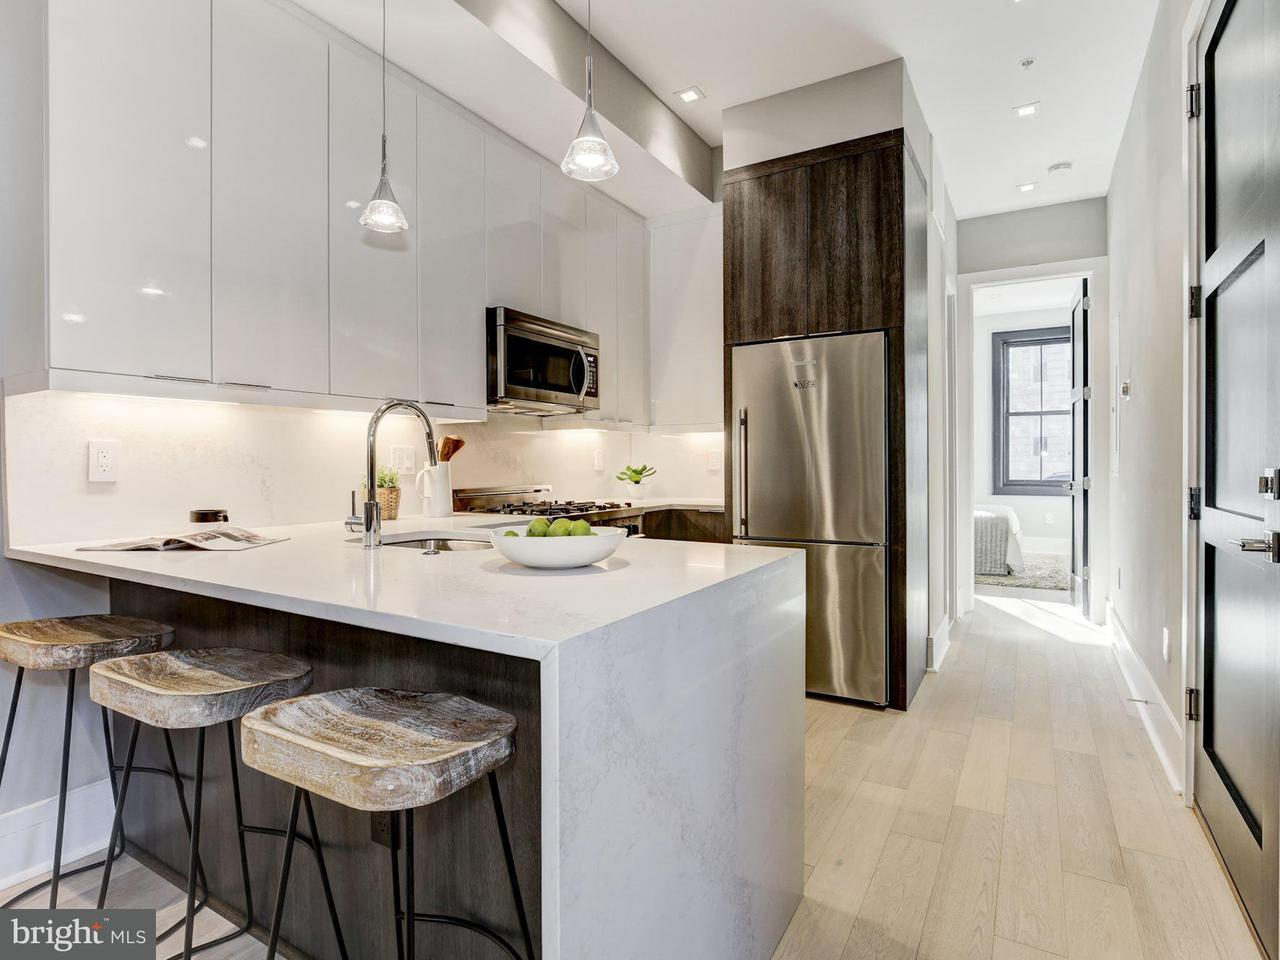 Townhouse for Sale at 1429 W St Nw #2 1429 W St Nw #2 Washington, District Of Columbia 20009 United States